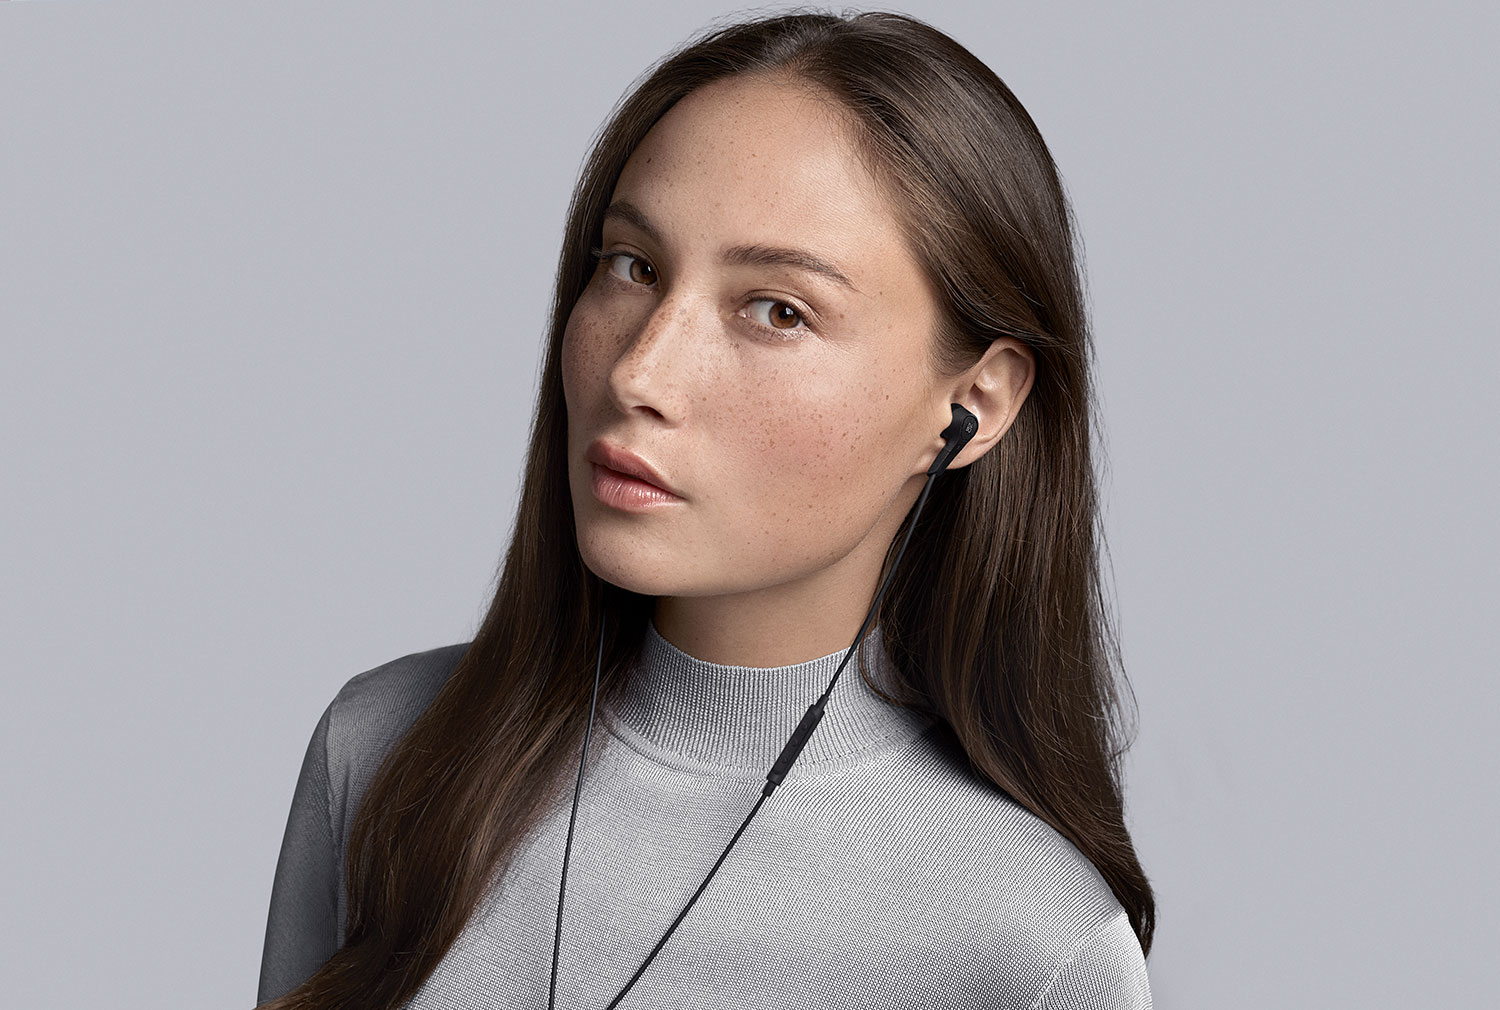 Beoplay E4 Kopfhörer mit Active Noise Cancelling: